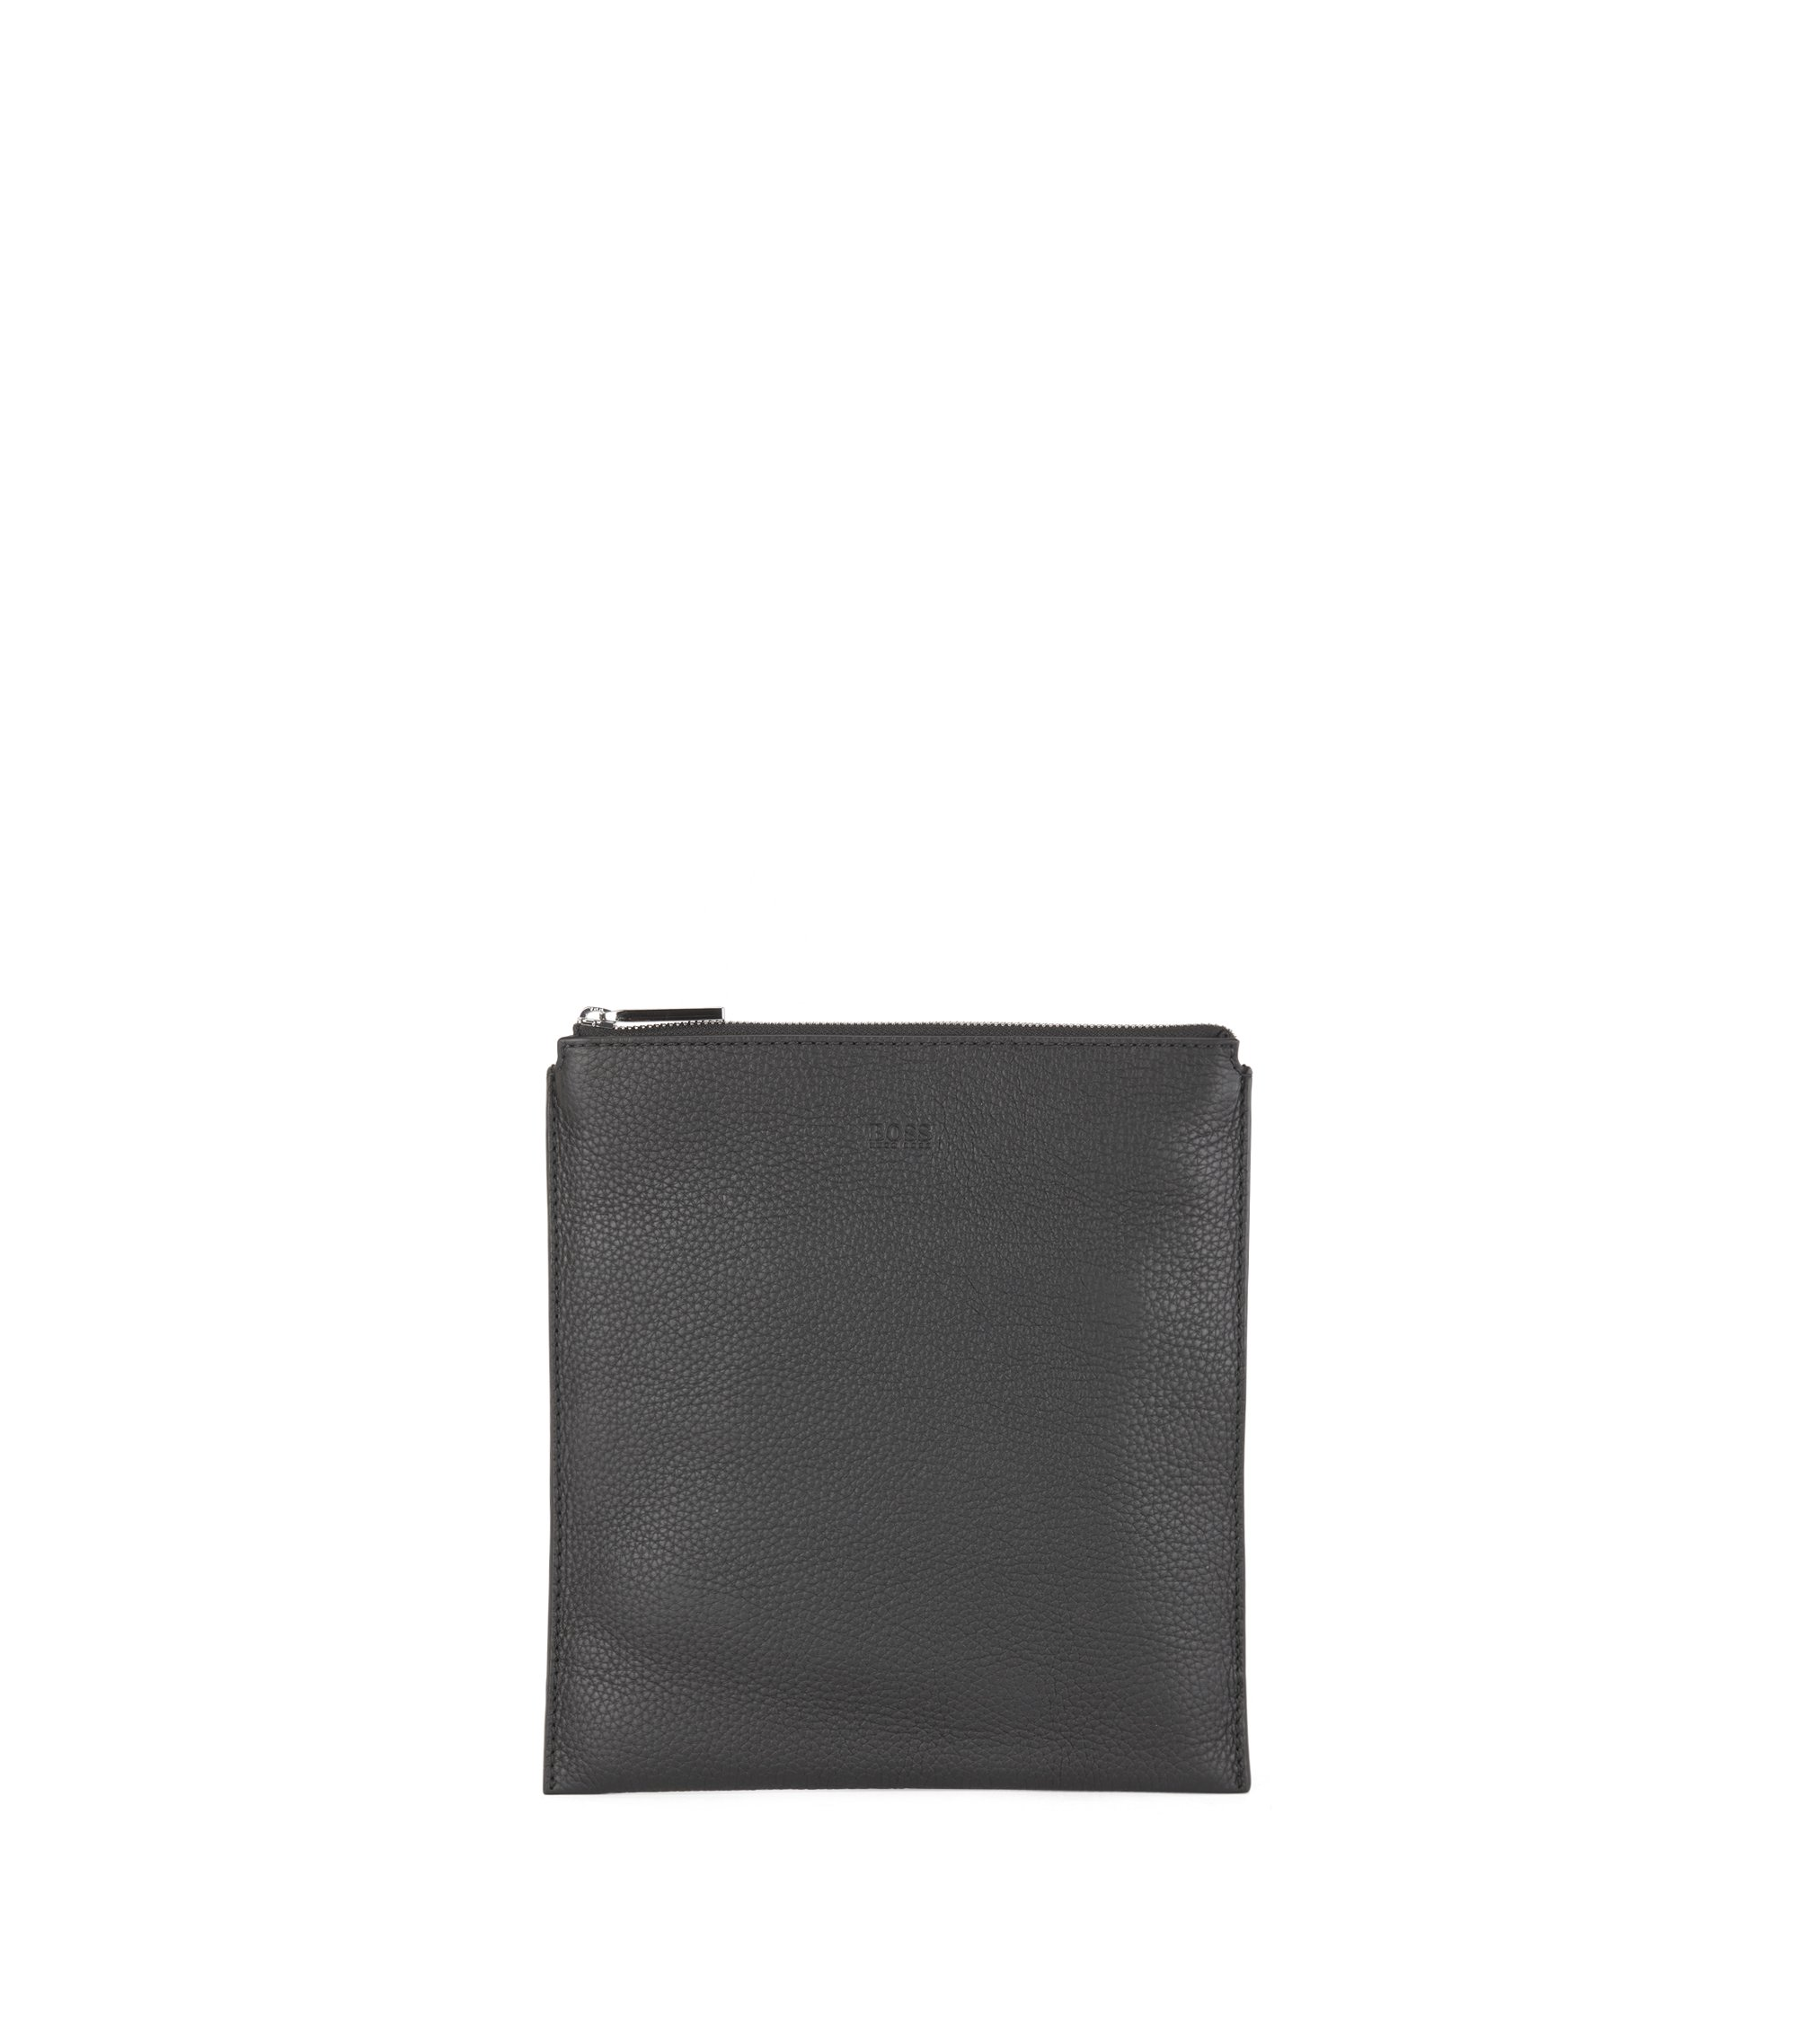 Envelope bag in grainy Italian leather, Black